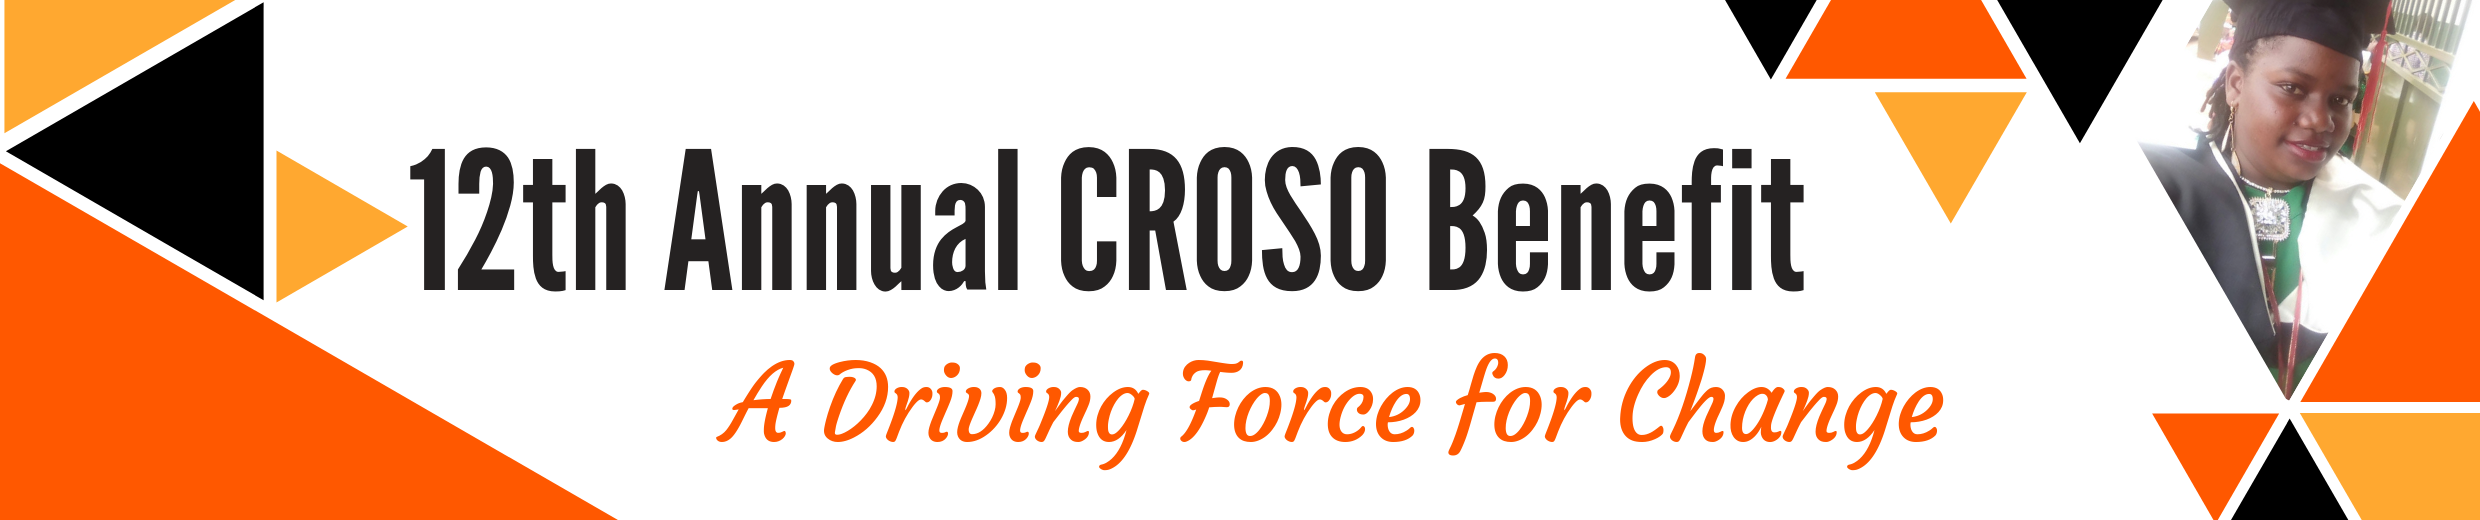 2019 CROSO Annual Benefit Invitation - banner.png